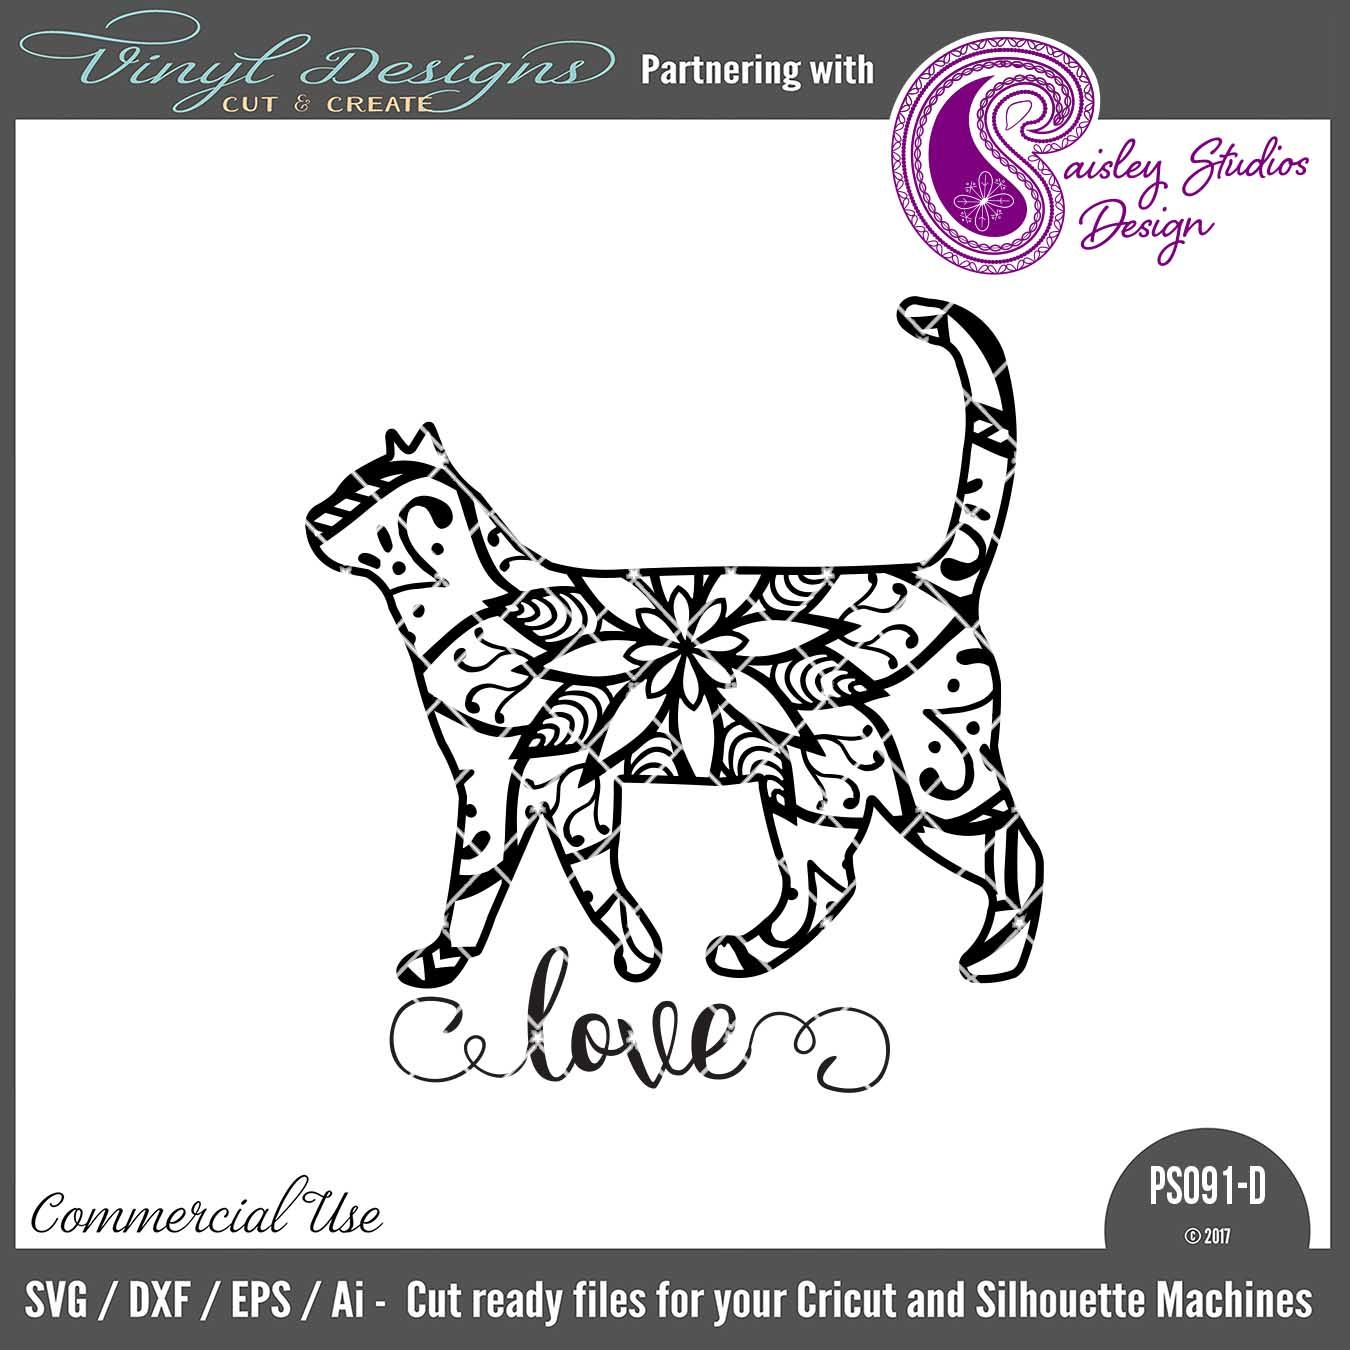 PS091D Cat Mandala Sold By Paisley Studios DesignSmall Business Commercial UseAvailable In SVG DXF